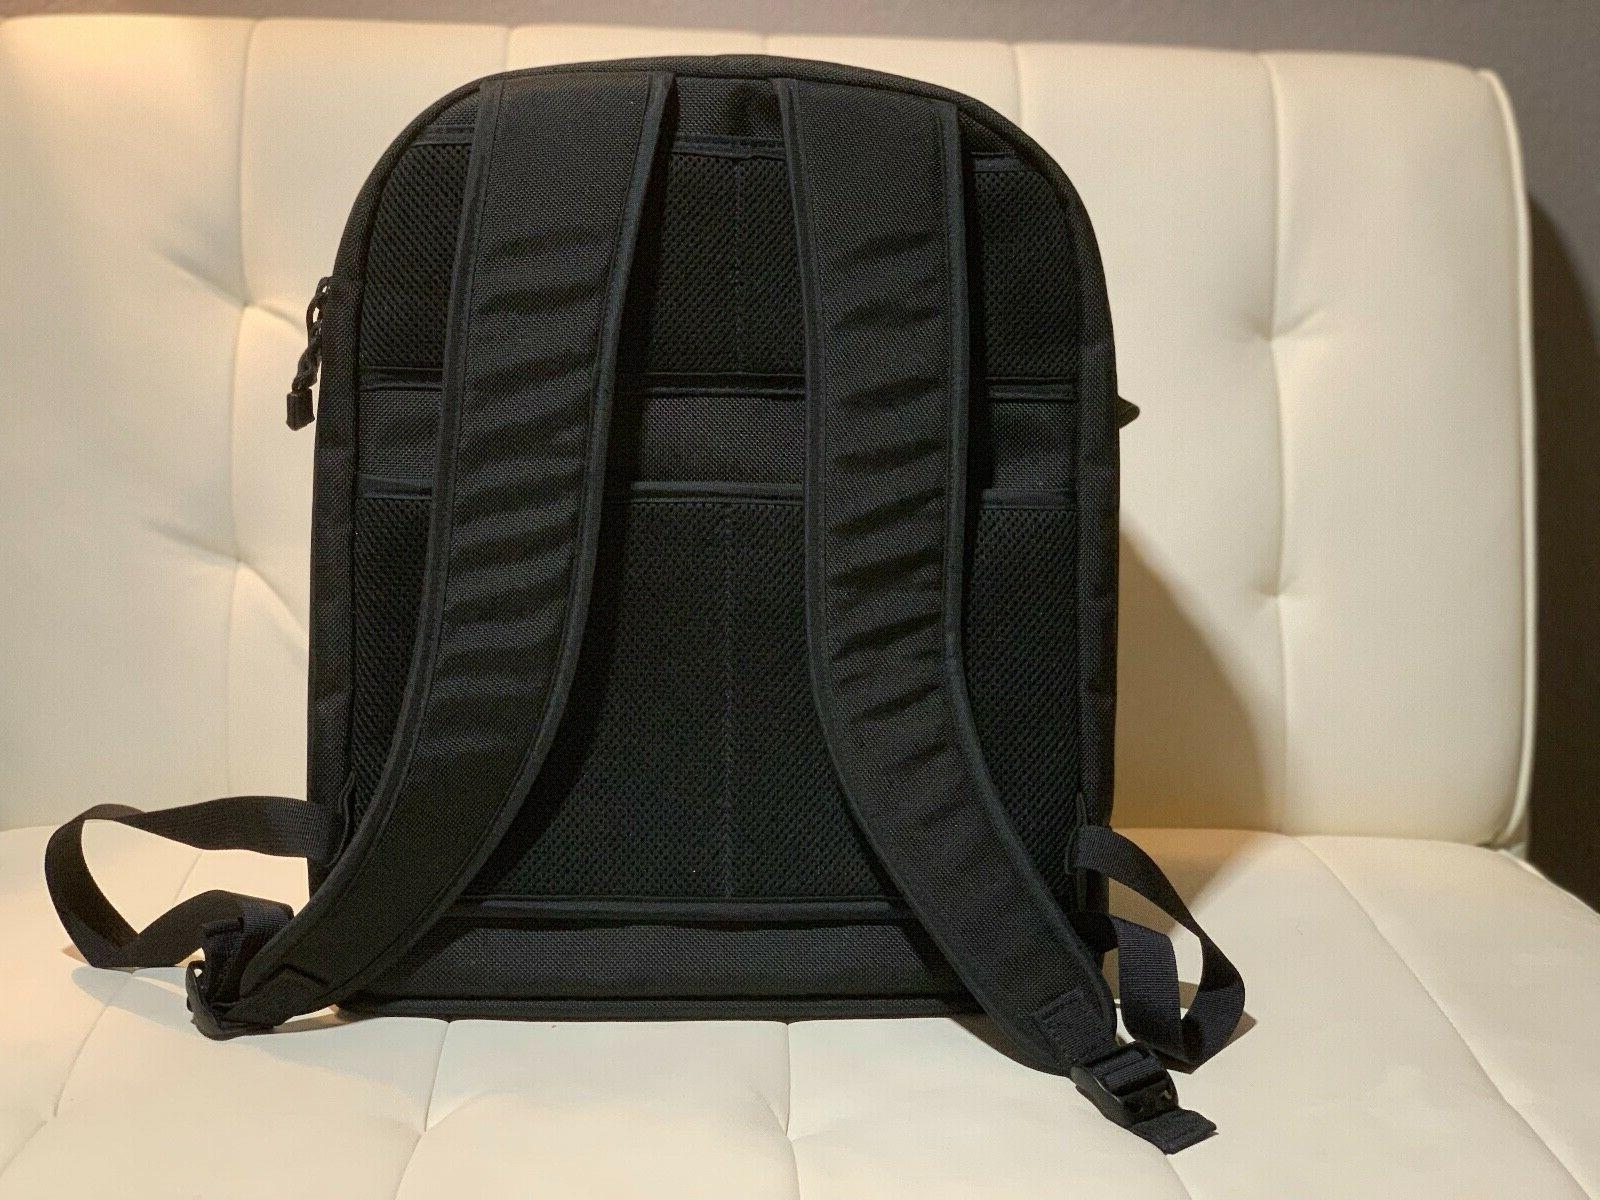 WaterfieldPRO EXECUTIVE Nylon Accent